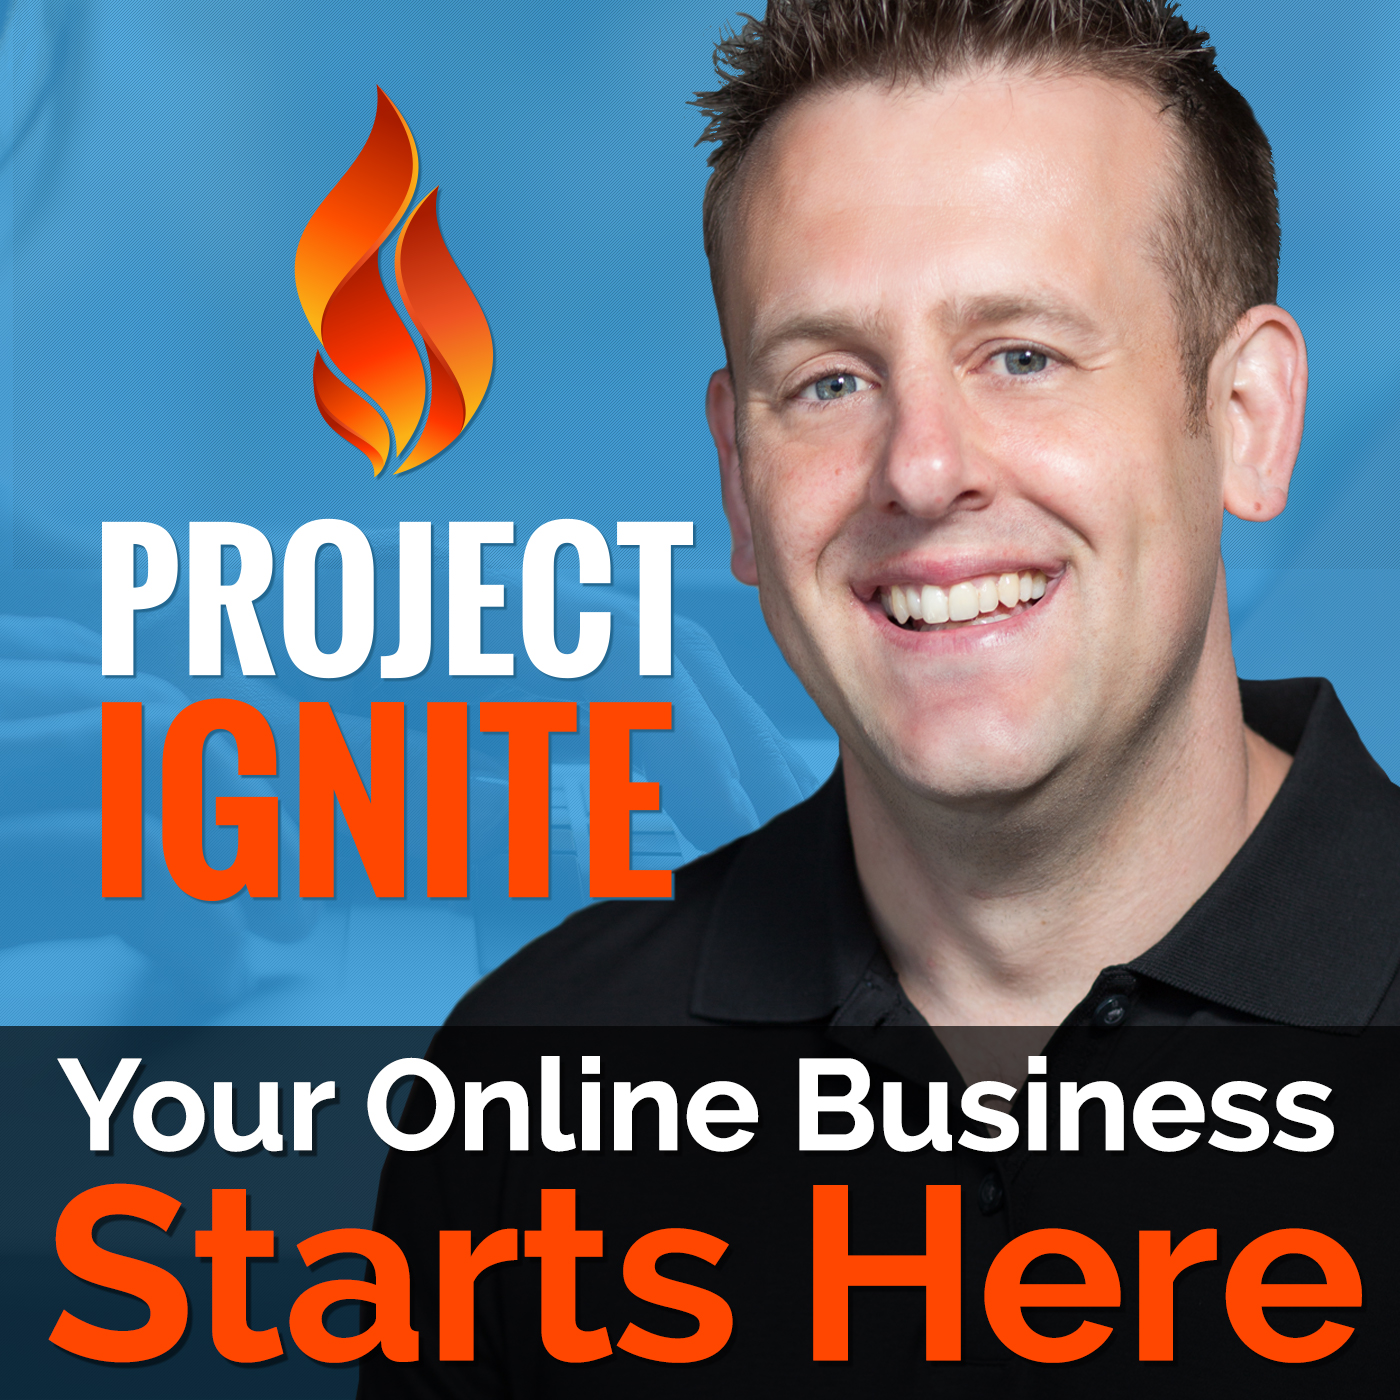 Project Ignite Podcast with Derek Gehl: Online Business | Internet Marketing | Make Money Online